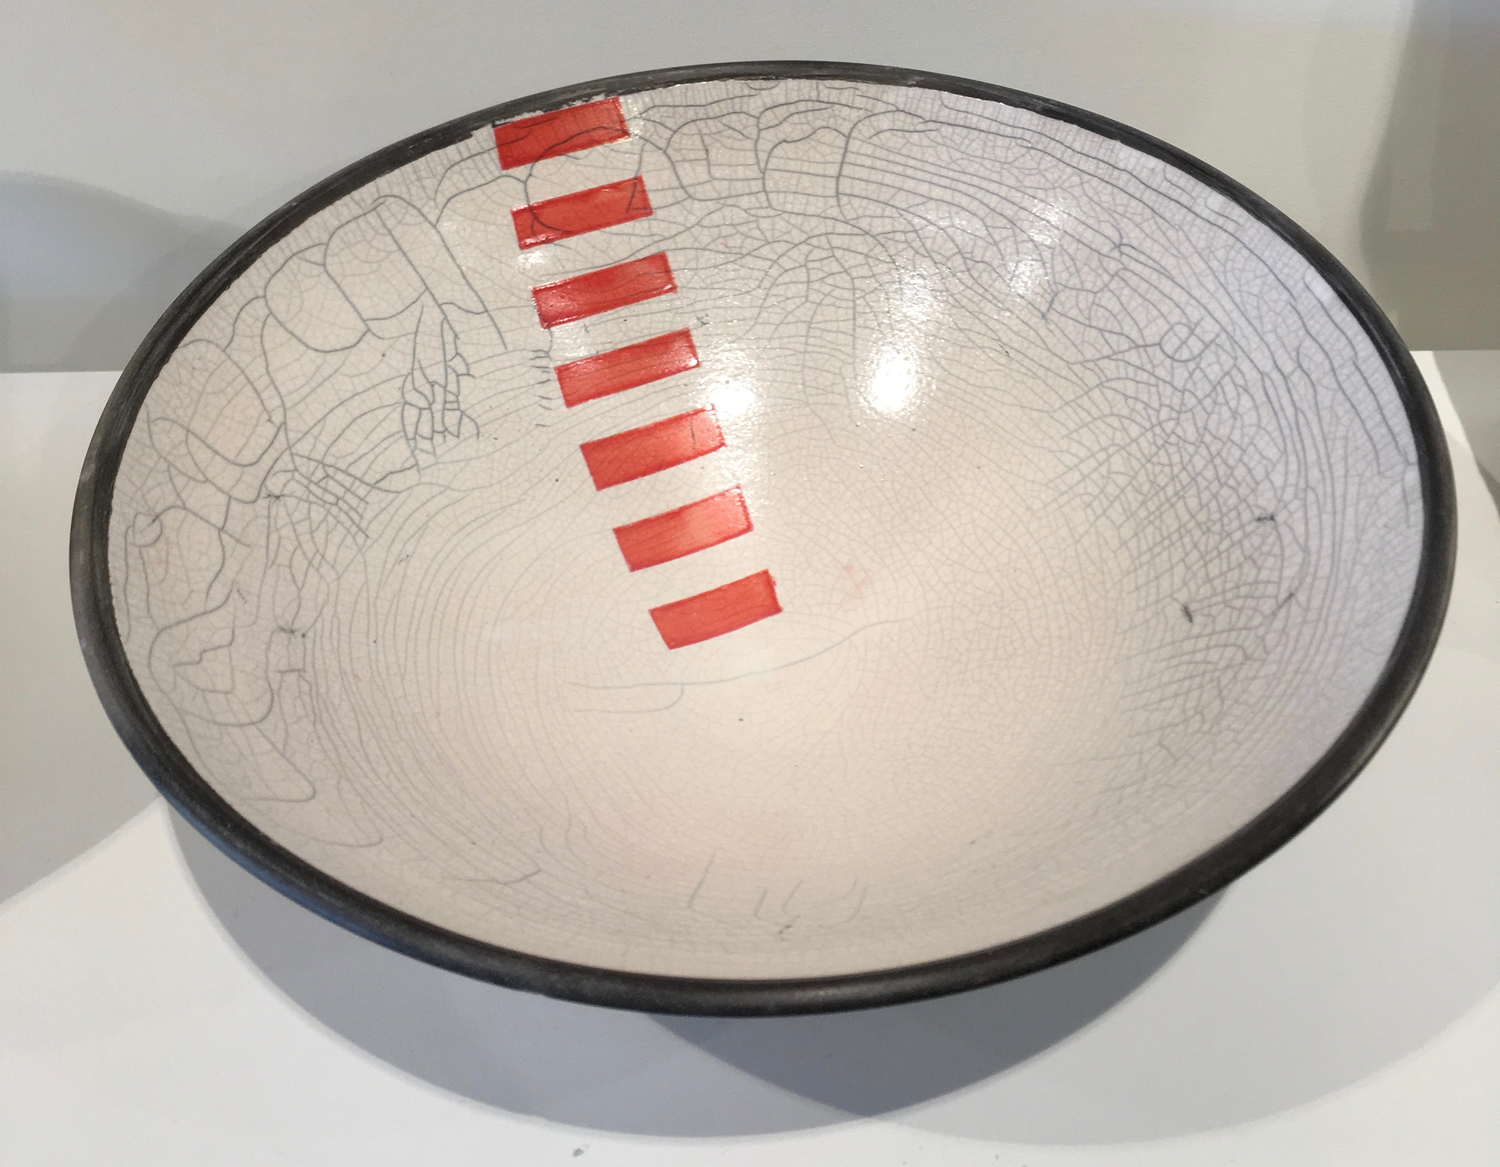 White bowl with red